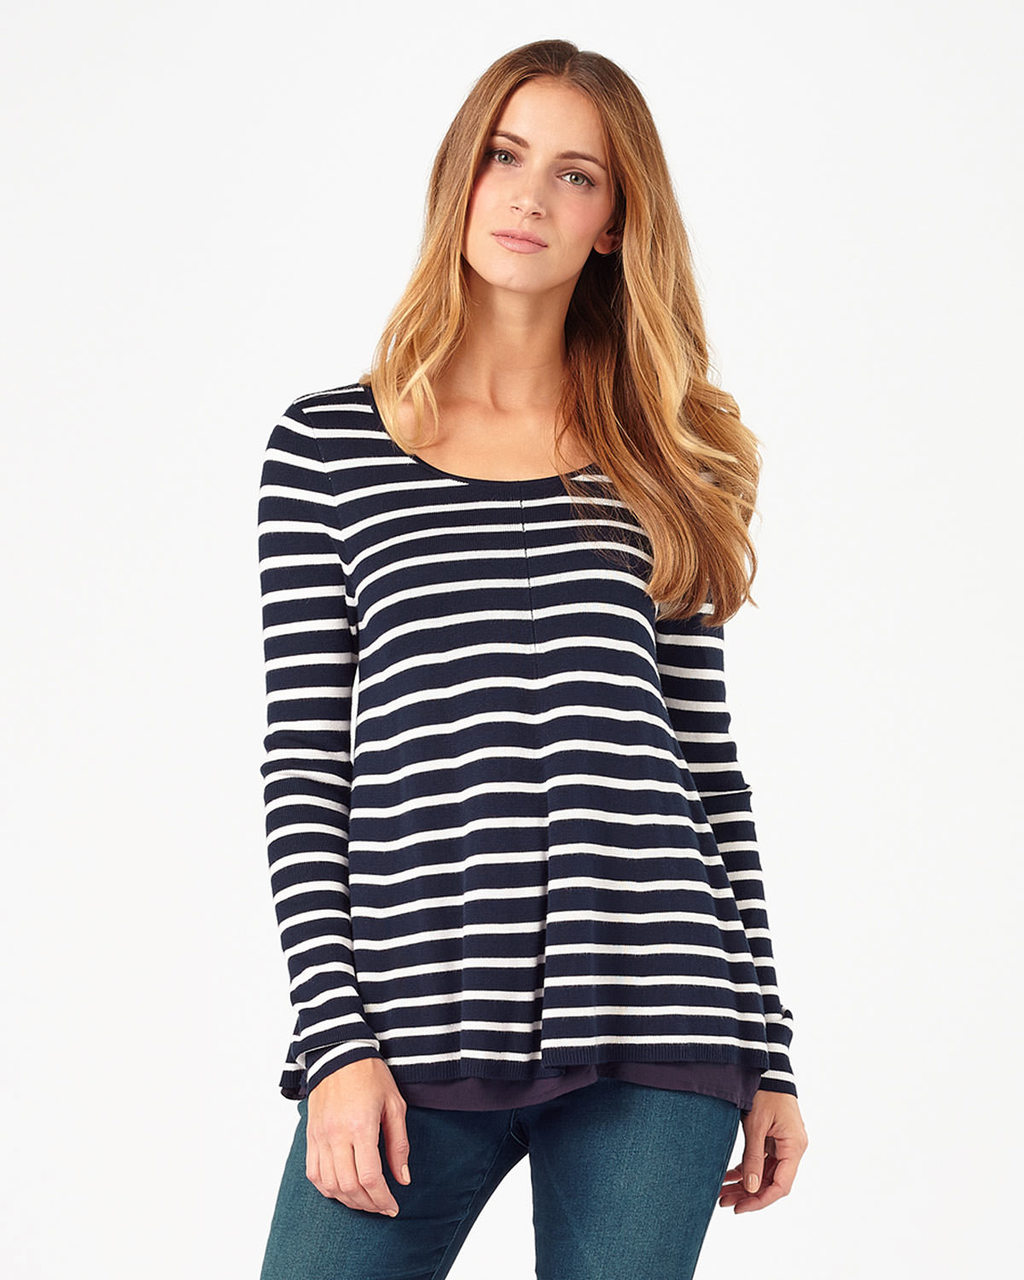 Cali Anne Stripe Knit - neckline: round neck; pattern: horizontal stripes; length: below the bottom; style: standard; secondary colour: white; predominant colour: navy; occasions: casual, creative work; fit: standard fit; sleeve length: long sleeve; sleeve style: standard; texture group: knits/crochet; pattern type: knitted - other; pattern size: light/subtle; fibres: viscose/rayon - mix; season: s/s 2016; wardrobe: highlight